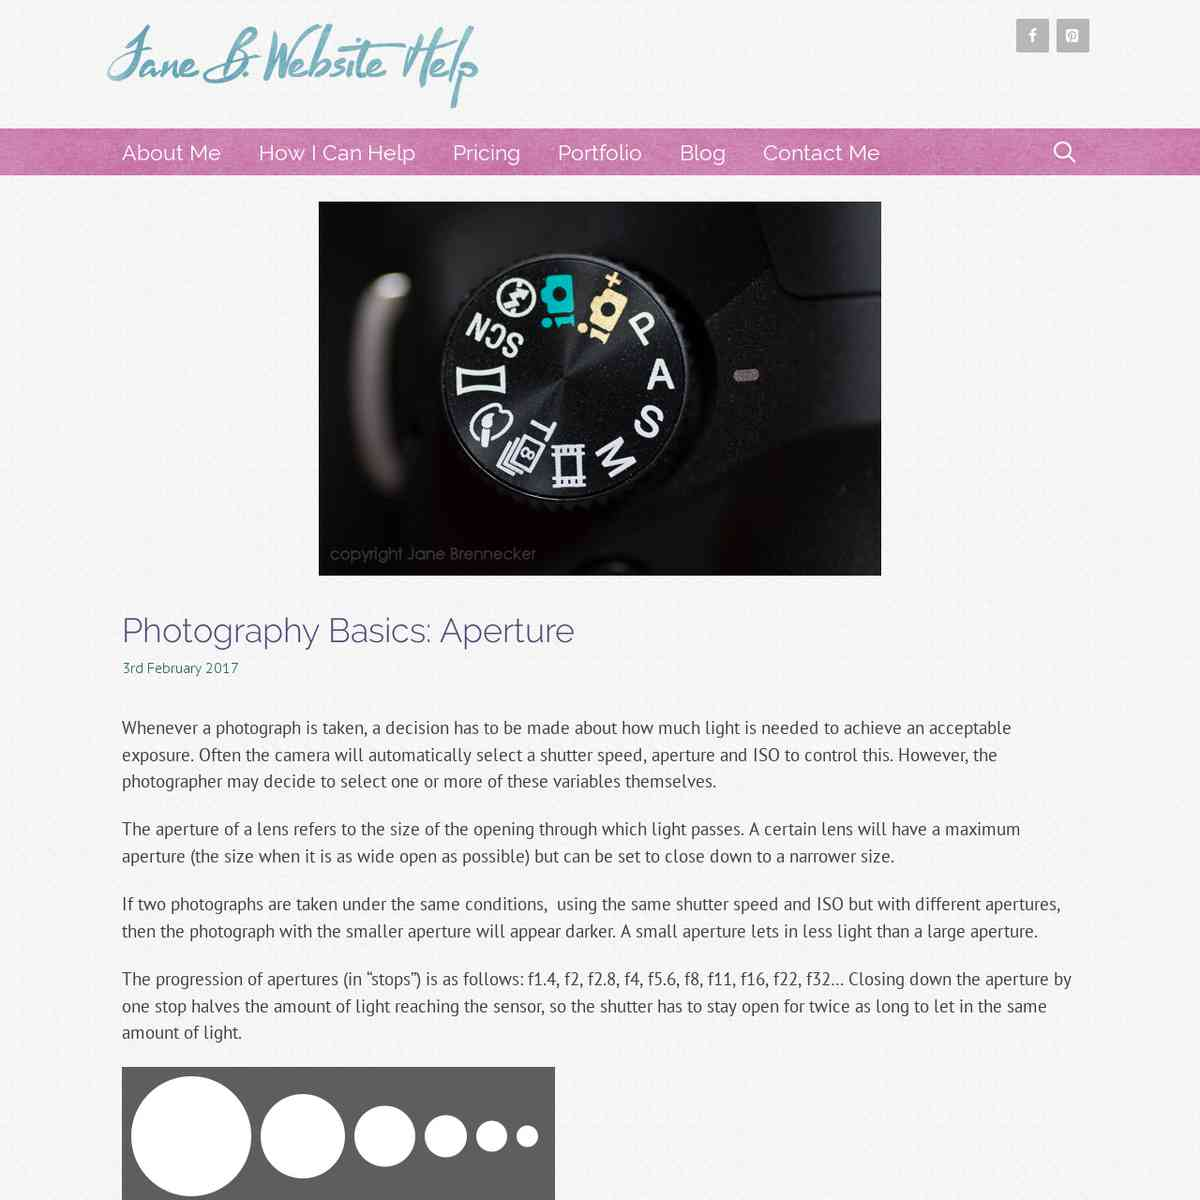 janebwebsitehelp.co.uk/photography-basics-aperture/